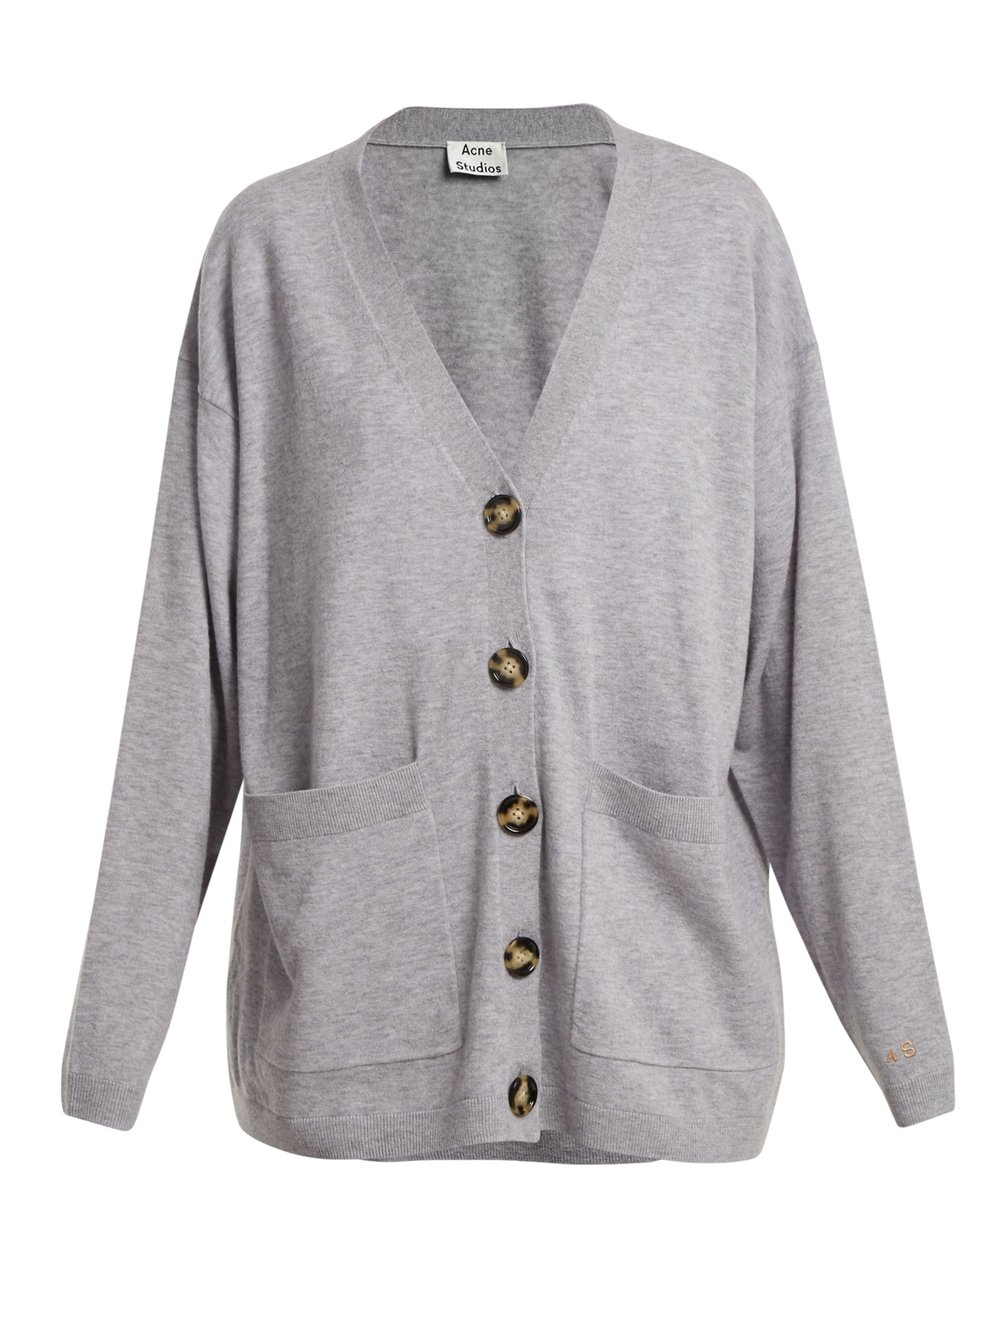 acne_studios_size_chart_sahar_patch_pocket_wool_cardigan.jpg